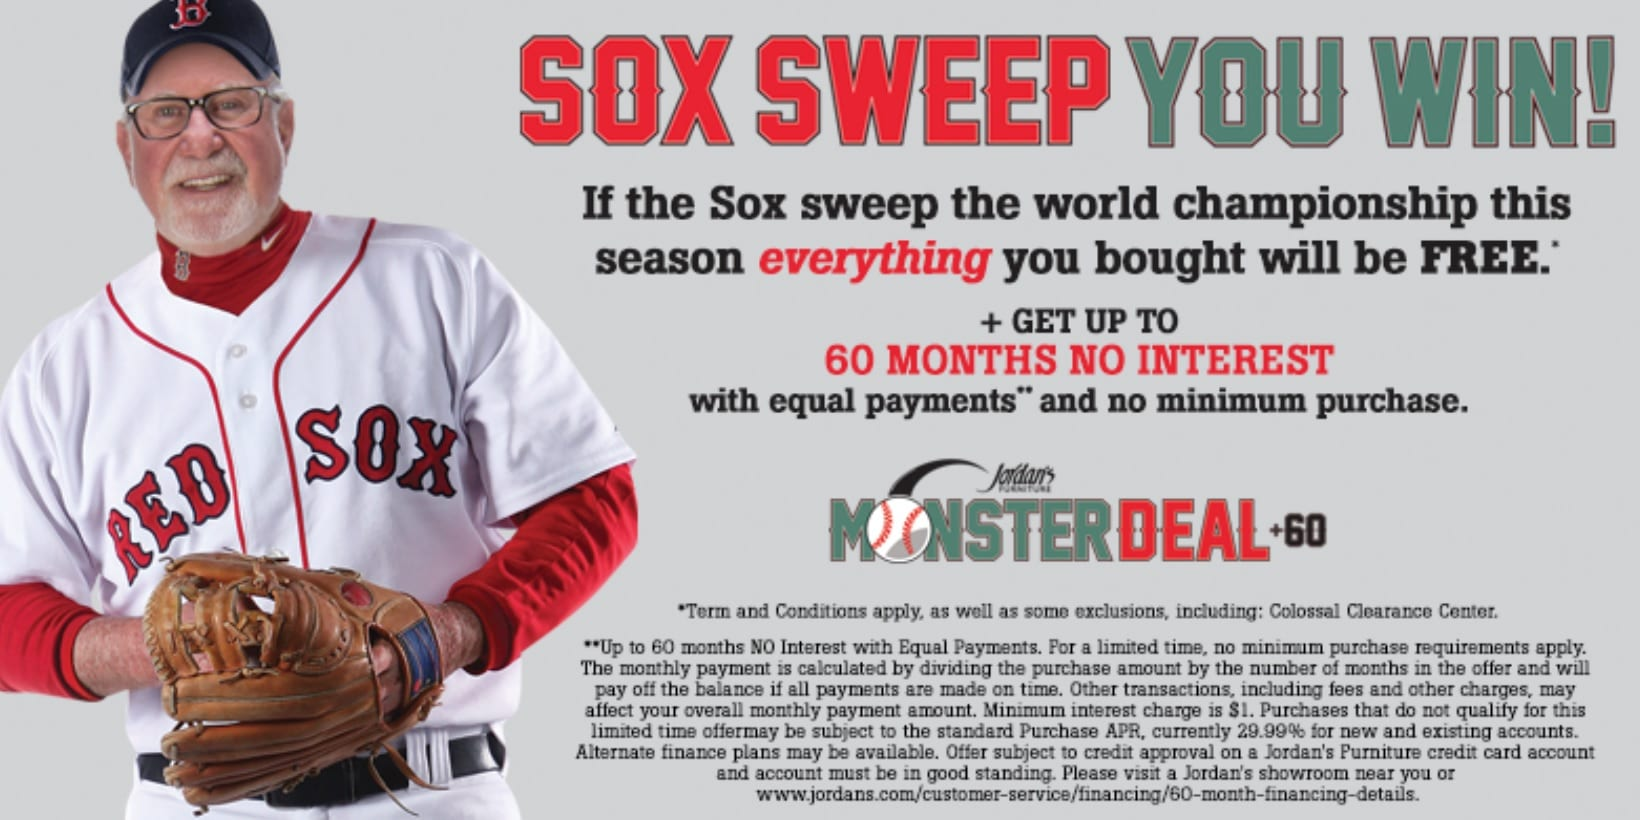 Jordan s Furniture 2017 Red Sox Promotion